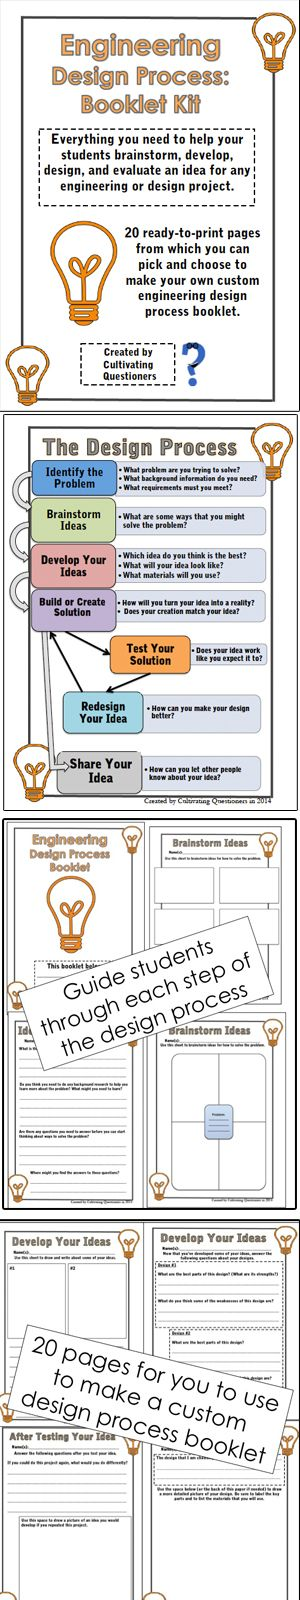 Engineering Design Process: Guided Booklet. This kit contains 20 pages designed to guide students through each step in the engineering design process. You can pick and choose from the pages to create your own booklet suitable for any STEM design challenge.